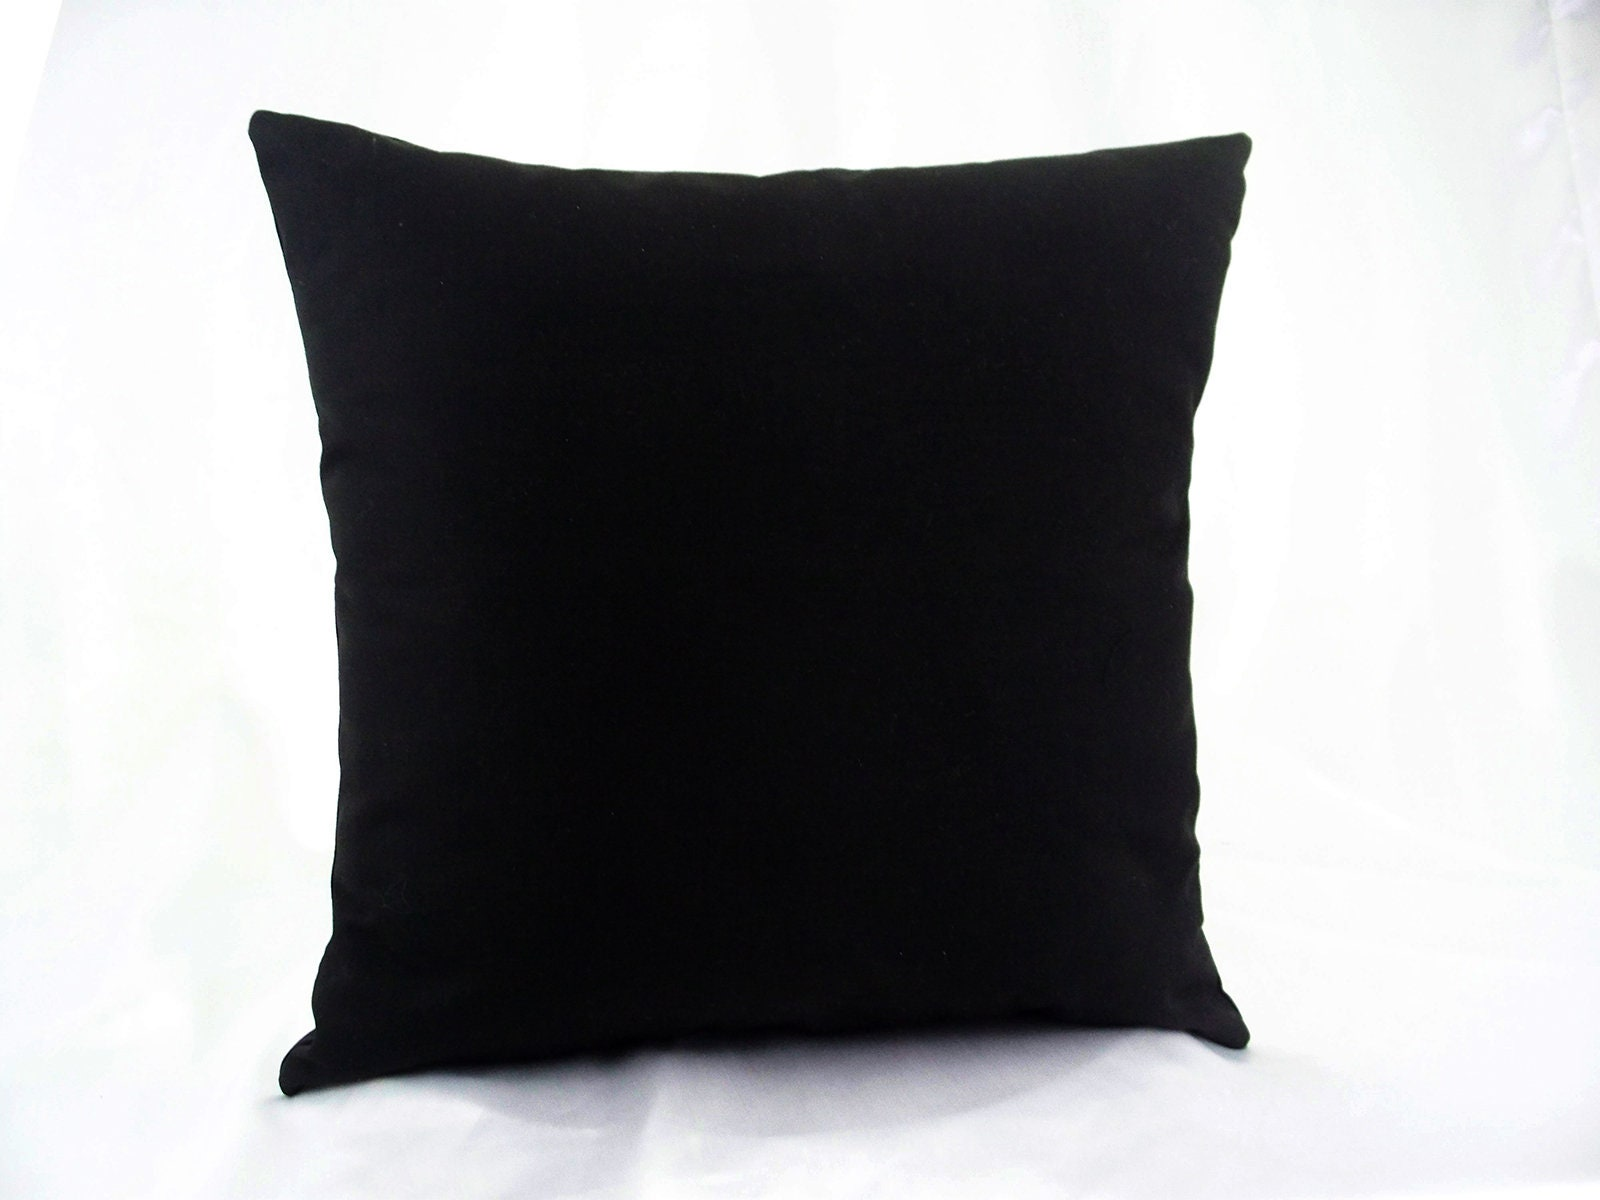 Black Throw Pillows Black Solid Pillow Solid Black Pillow Black Cushion Cover 16x16 18x18 20x20 Cushions Cover Pillow Cases Pillowcases